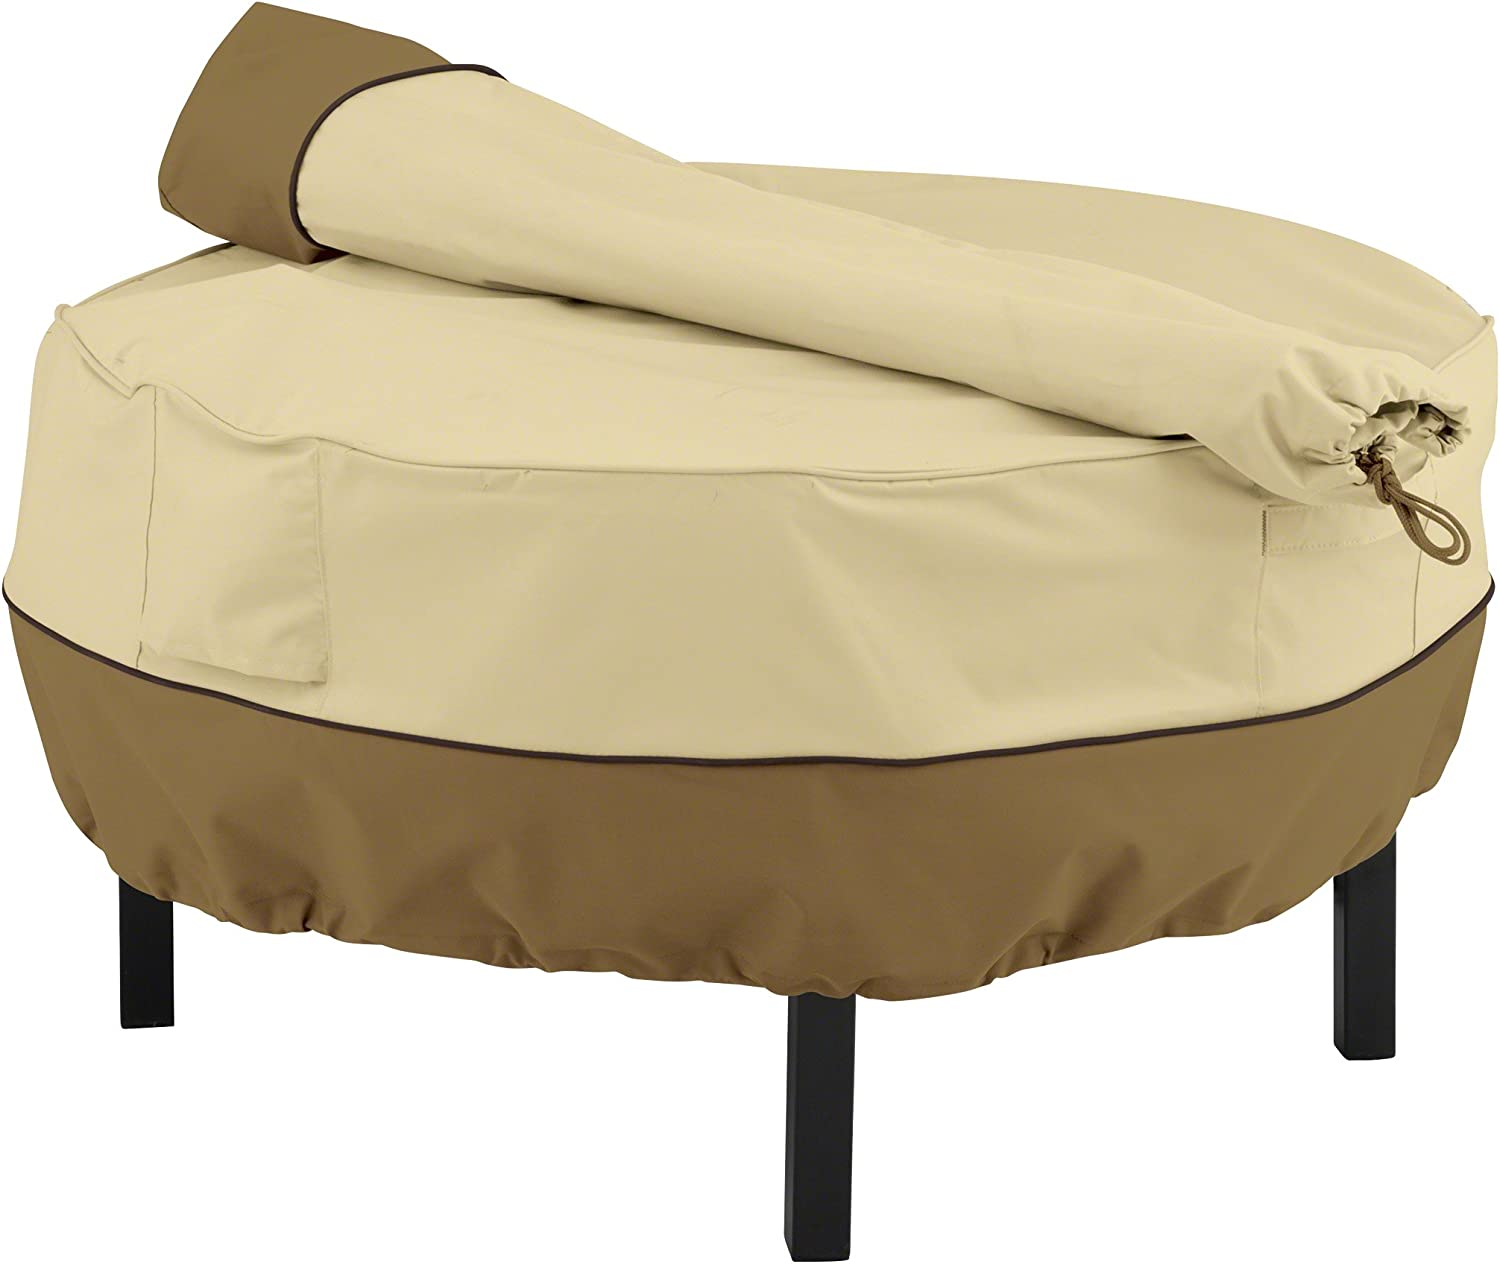 Classic Accessories Veranda Water-Resistant 40 Inch Cowboy Fire Pit Grill Cover and Storage Bag